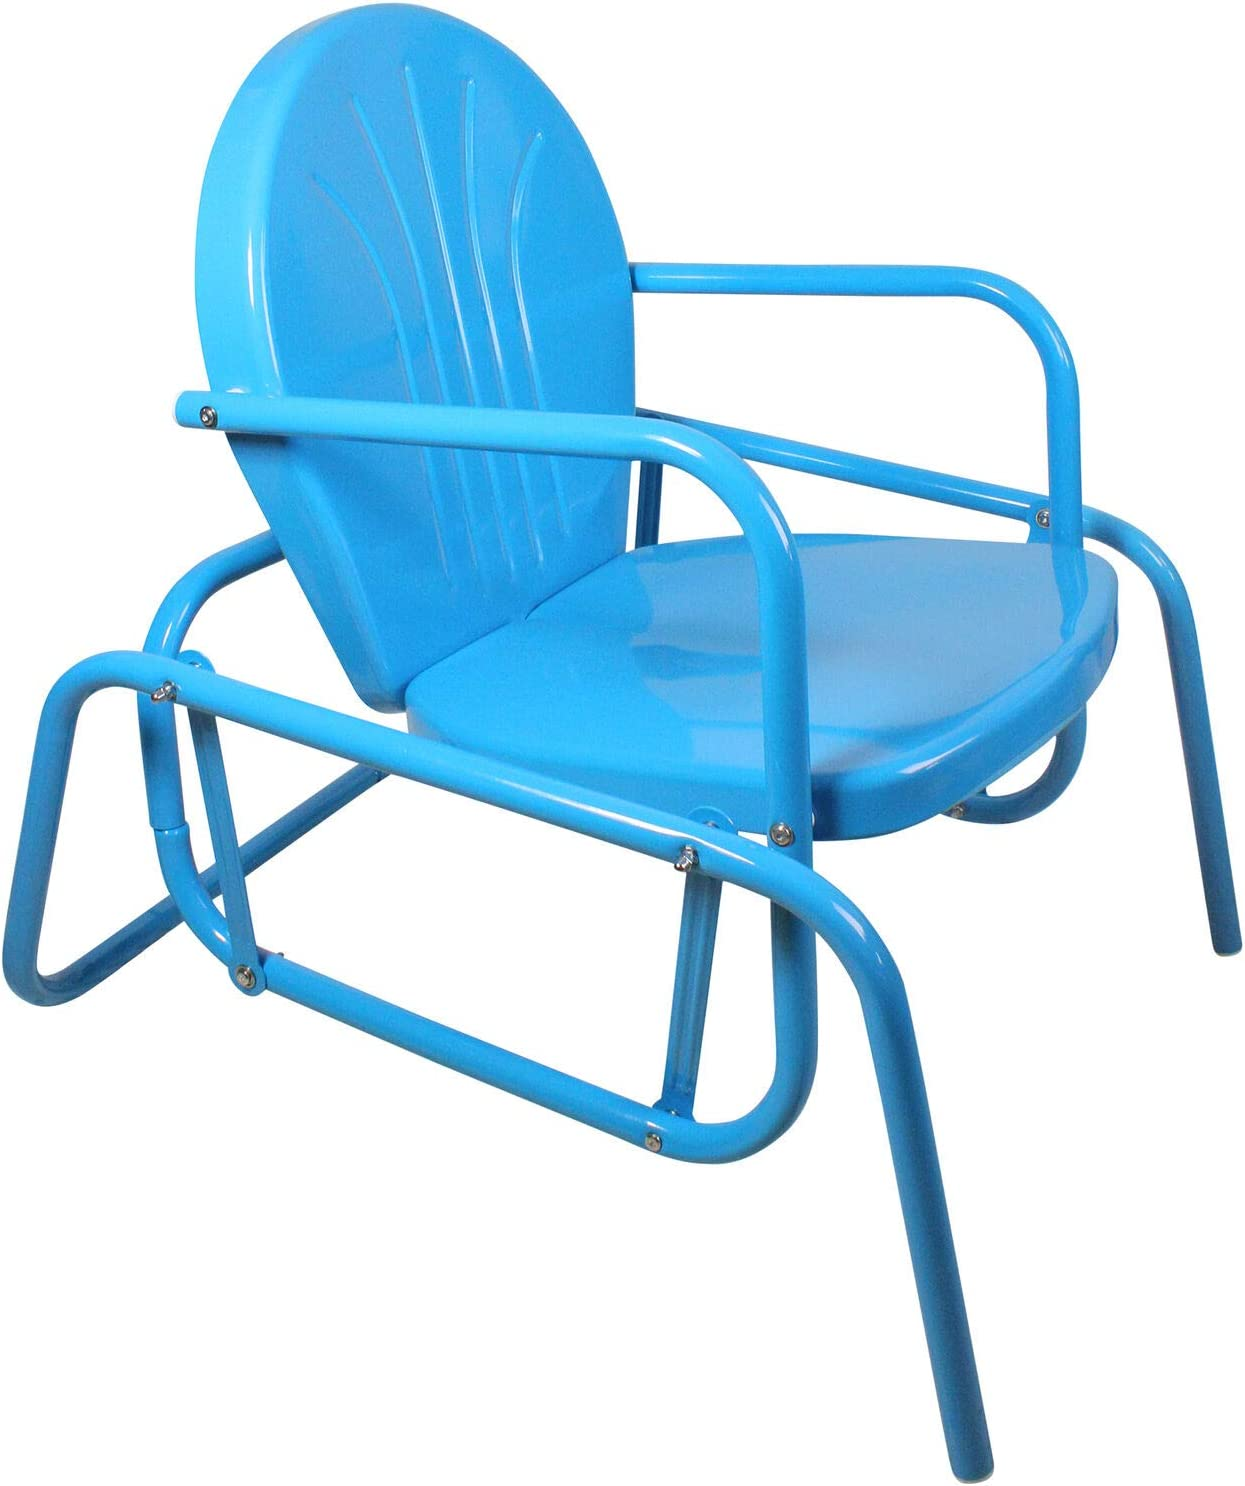 32 Inch Turquoise Blue Outdoor Retro Metal Tulip Single Glider